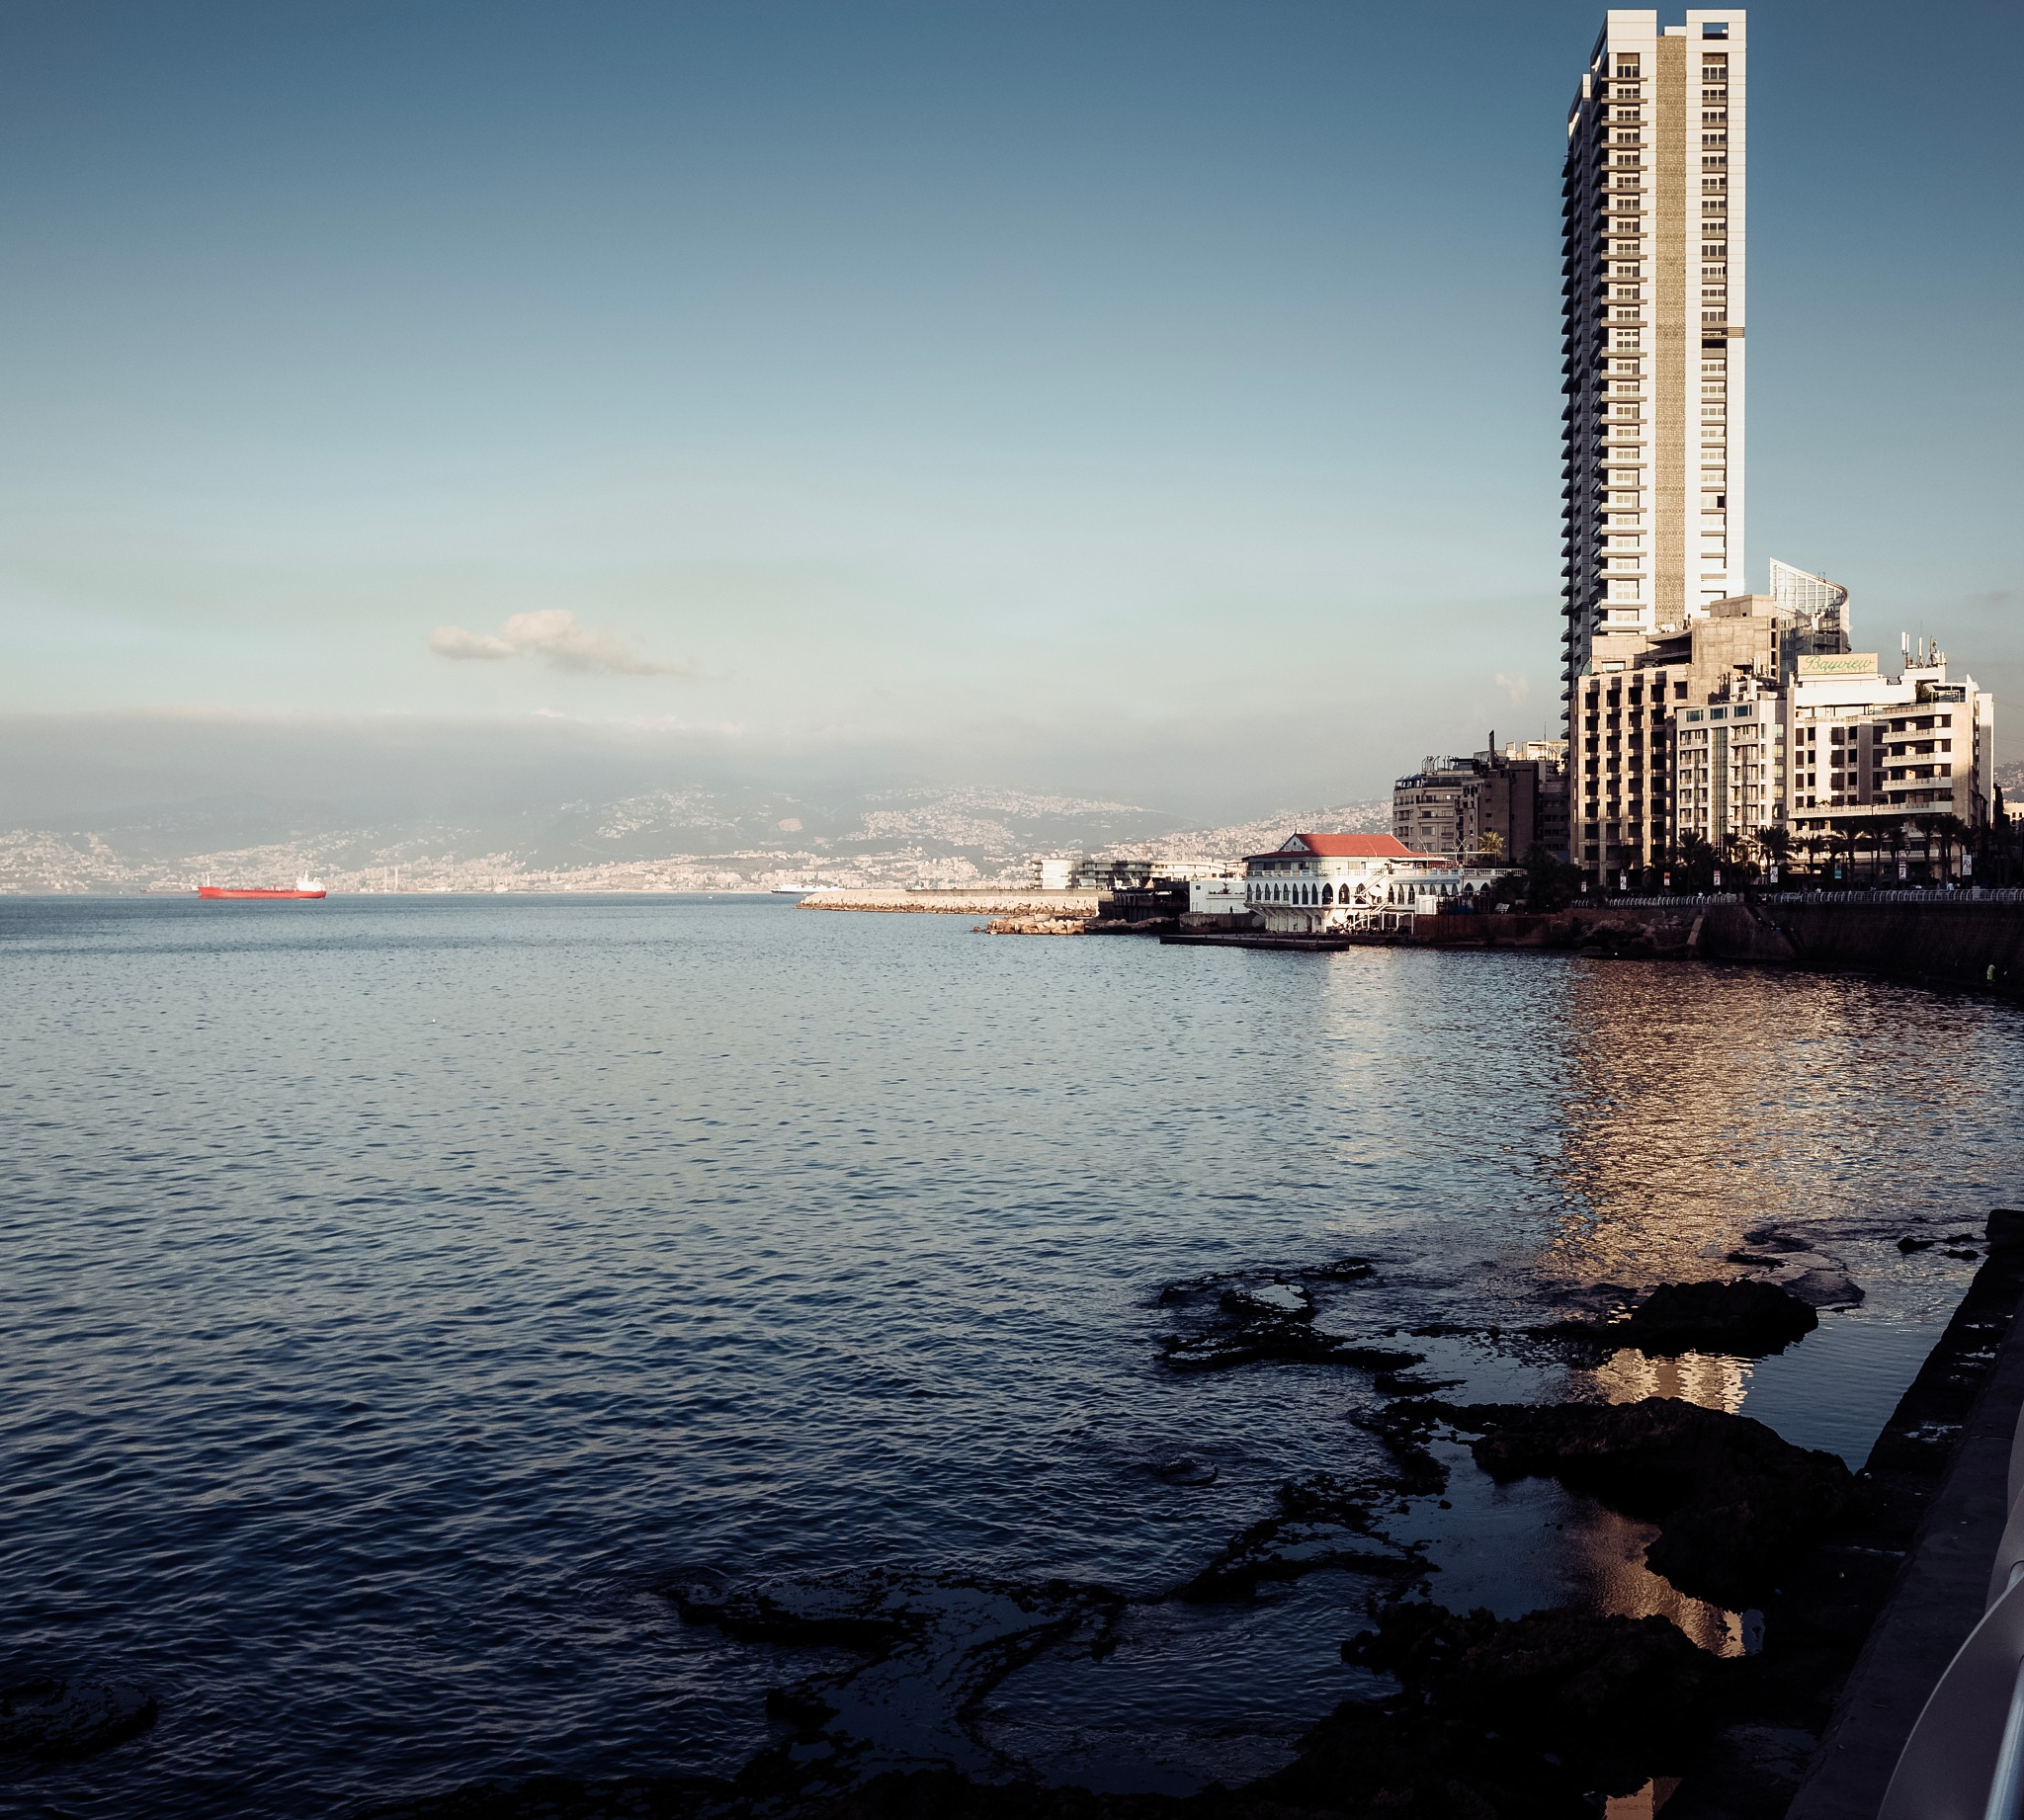 Mediterranean view, city of Beirut  by Fadi H